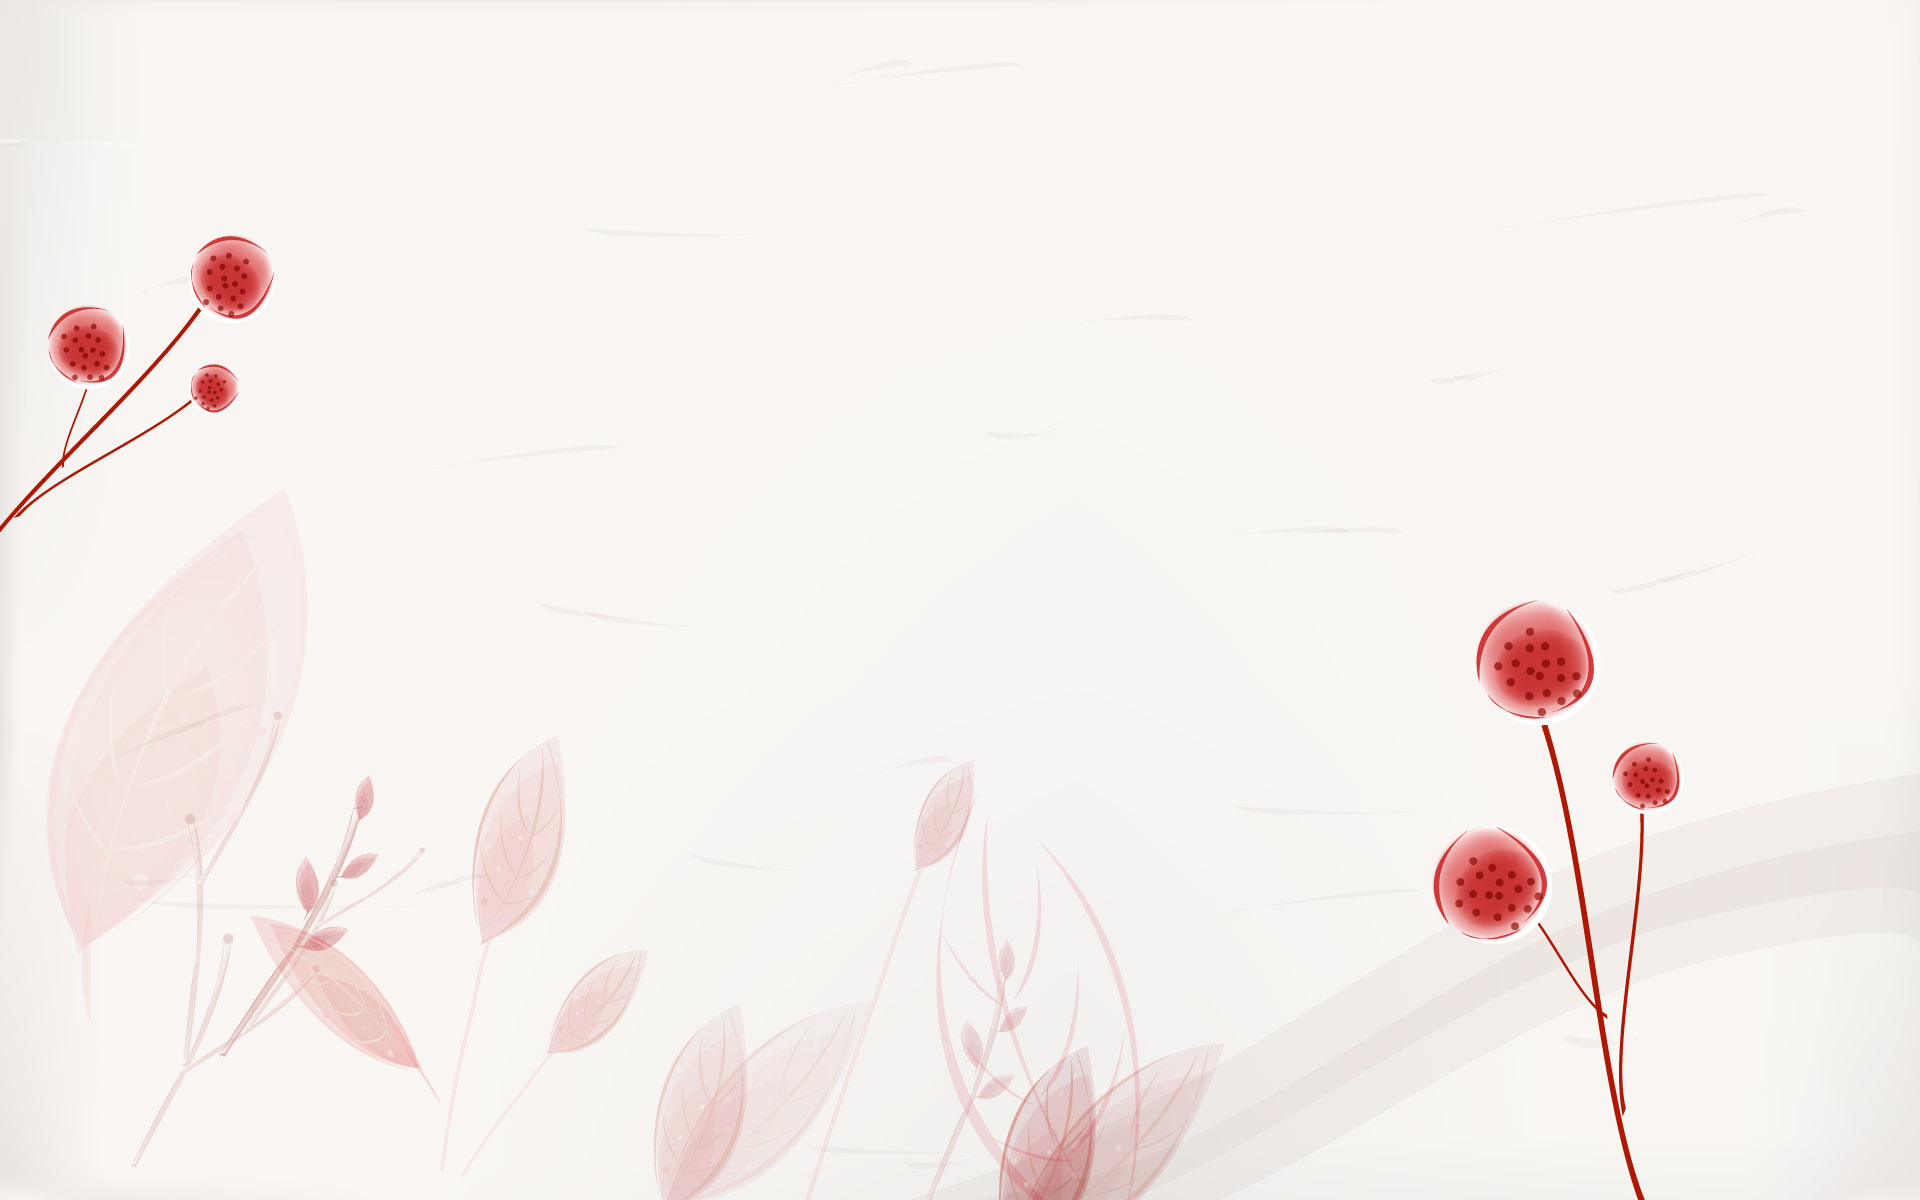 Background color 16750